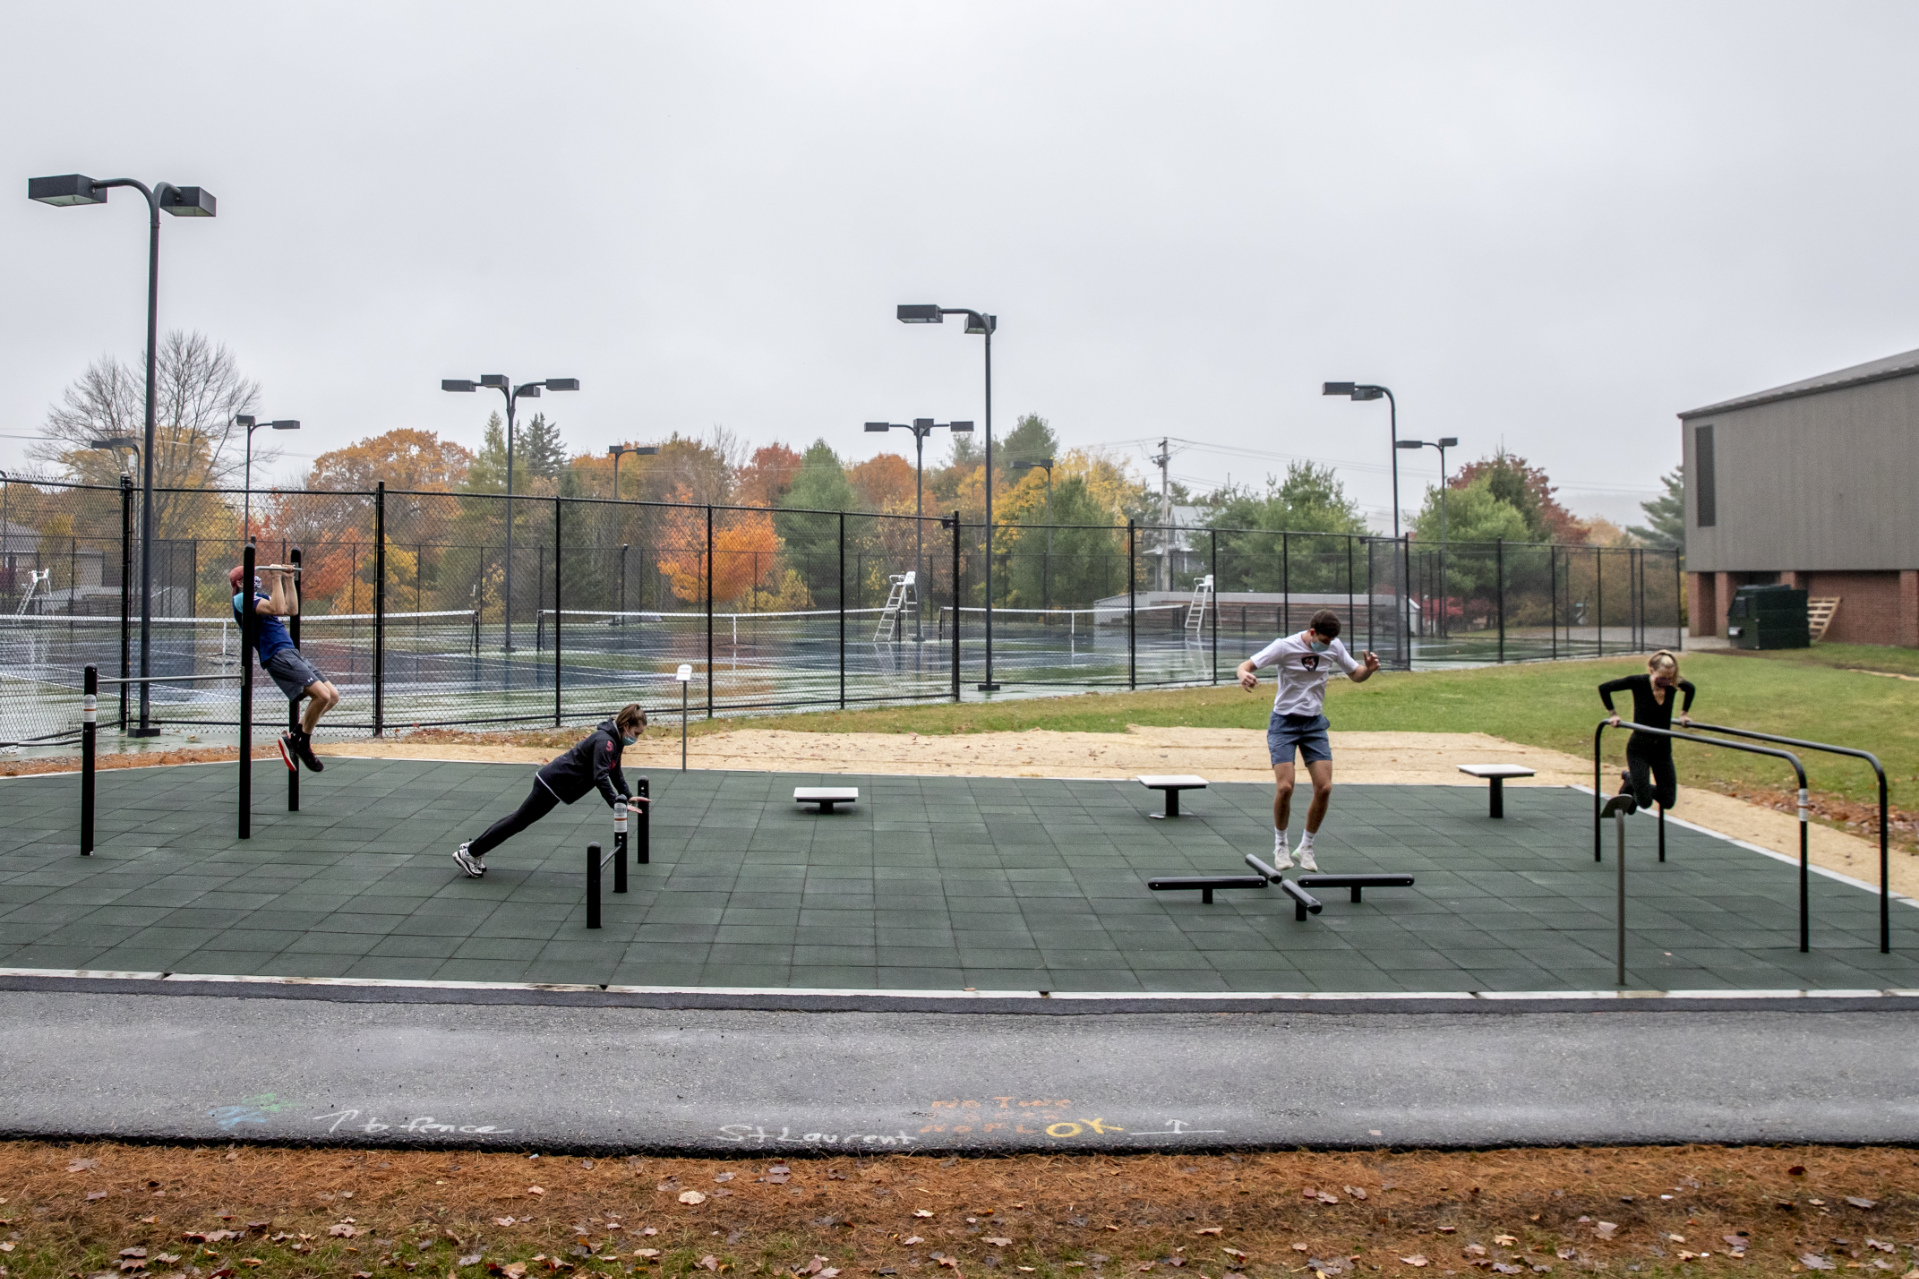 Each defying gravity in their own way, students work out at Bates' new fitness park on a damp October day. In the background is the Wallach Tennis Center. (Phyllis Graber Jensen/Bates College)